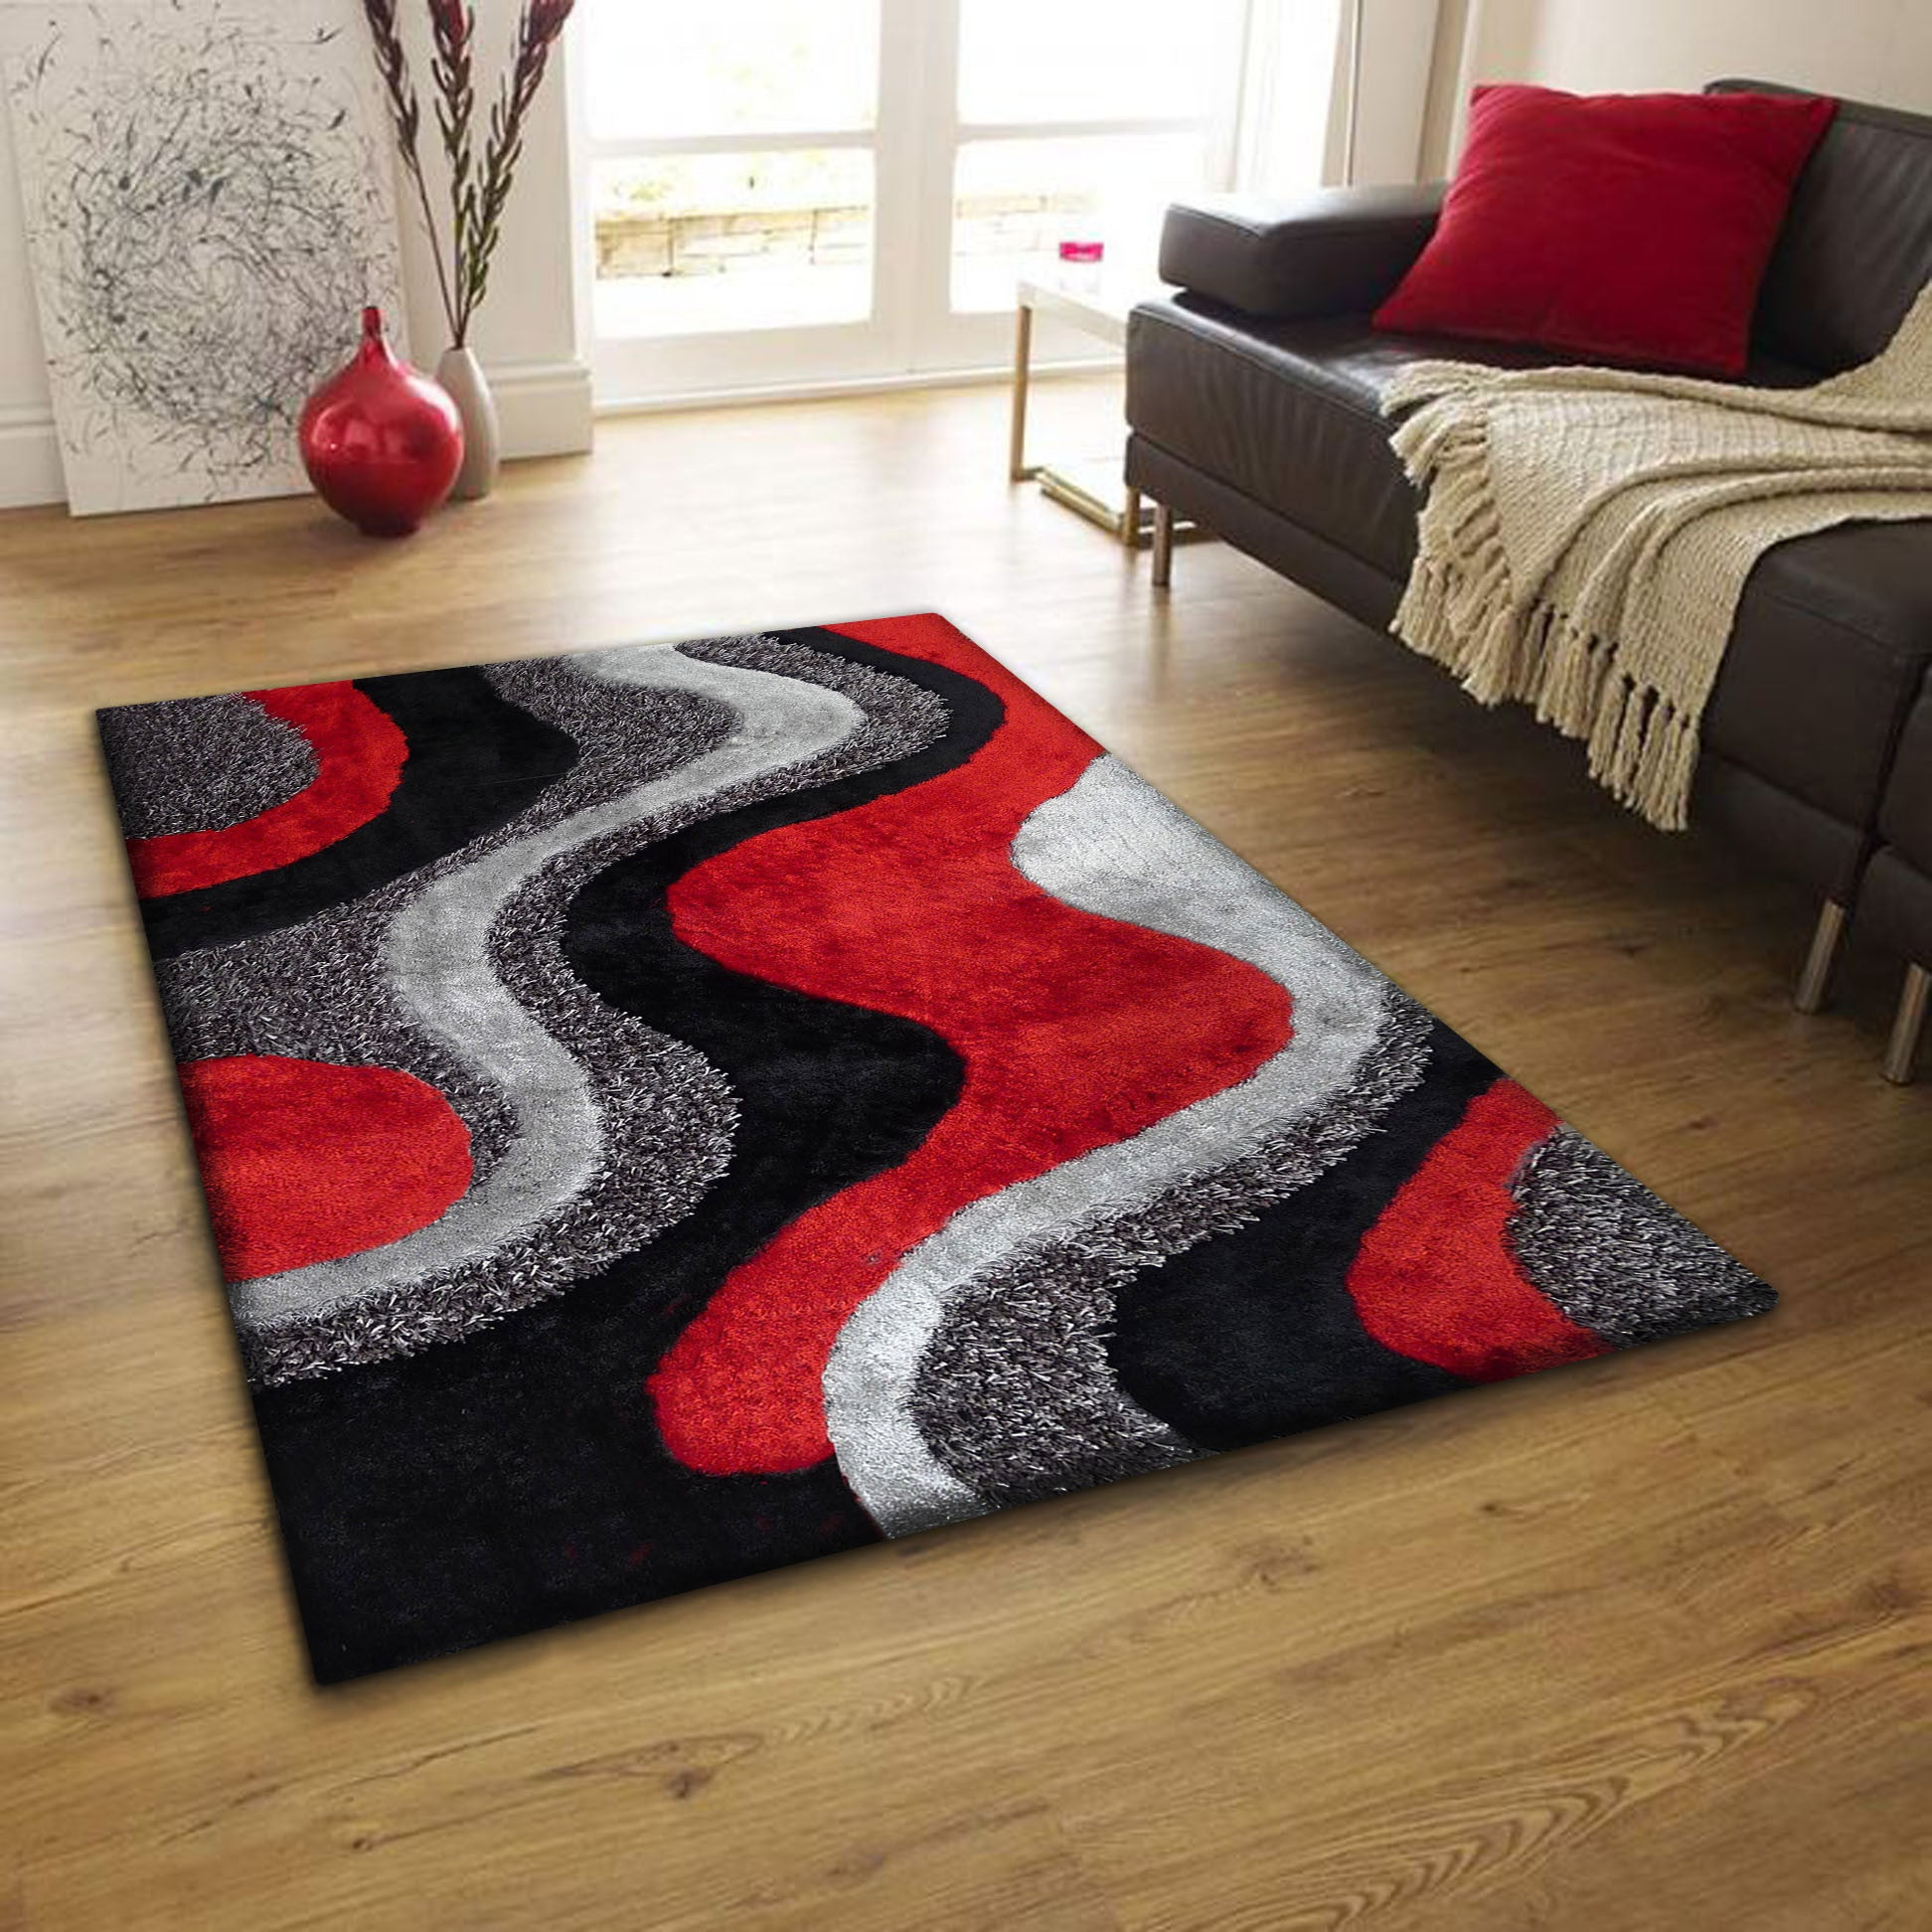 2-Piece Set | Black/Grey with Red Shag Area Rug & Rug Pad